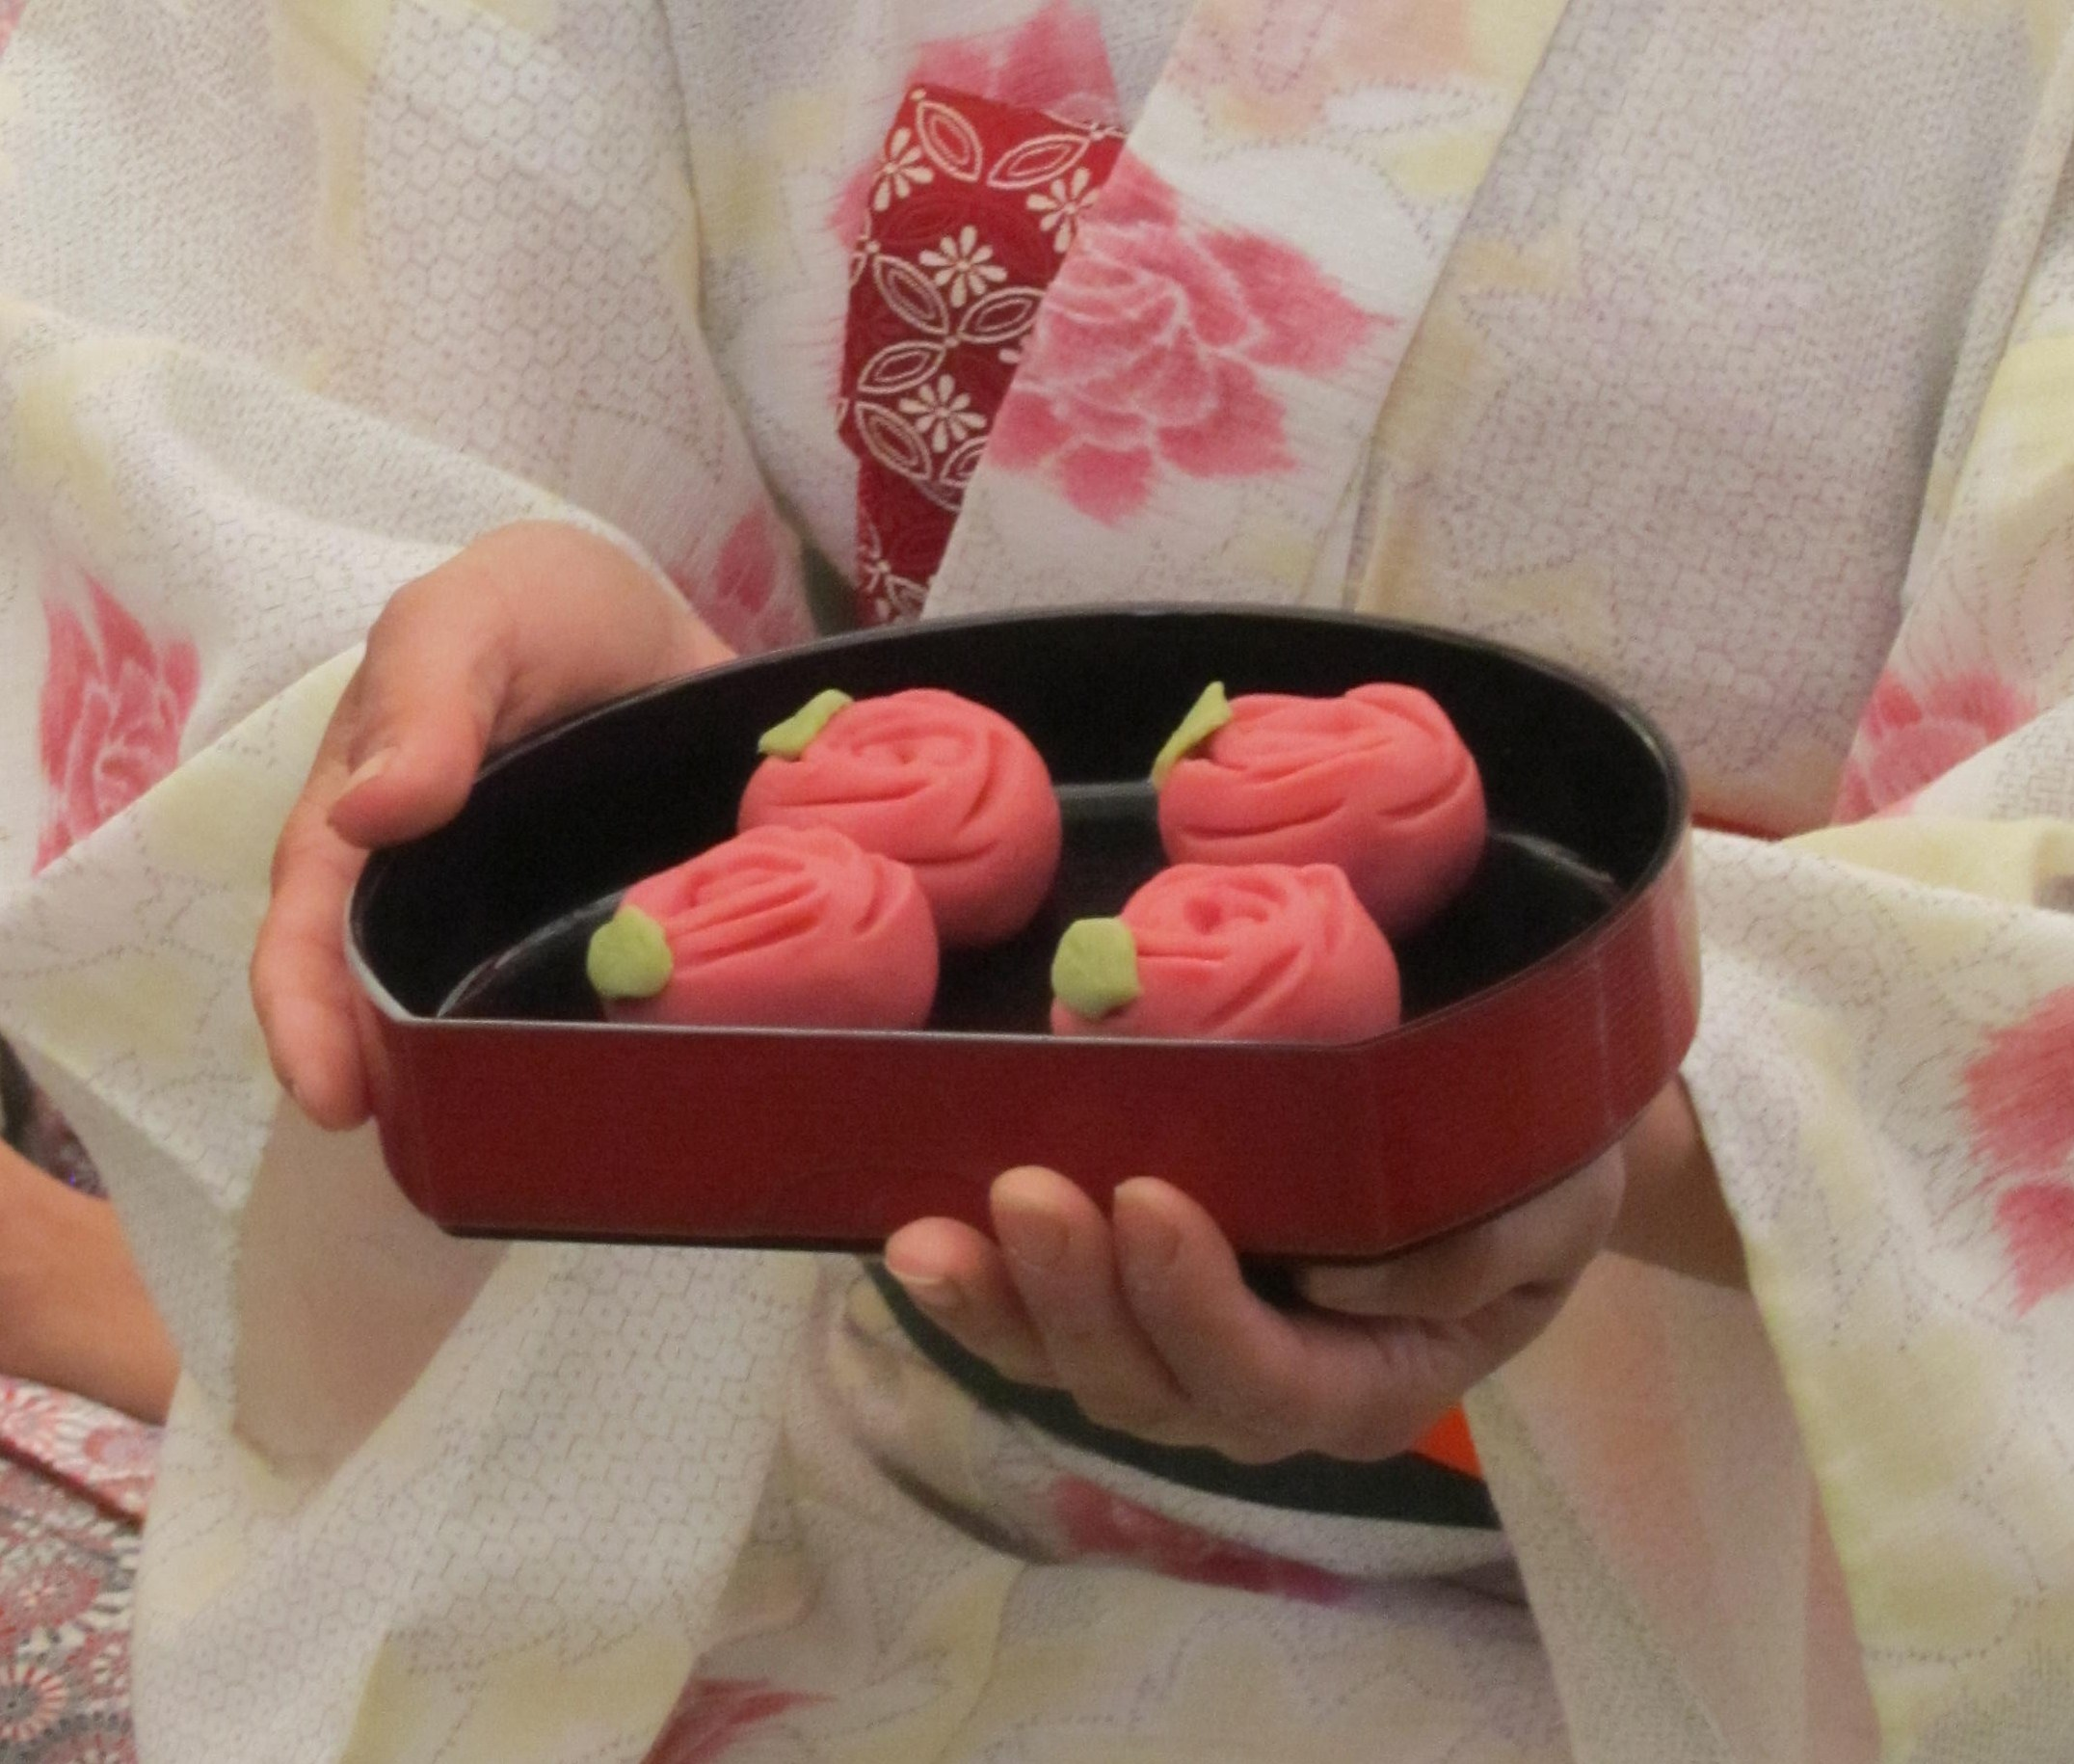 how to eat with wagashi stick